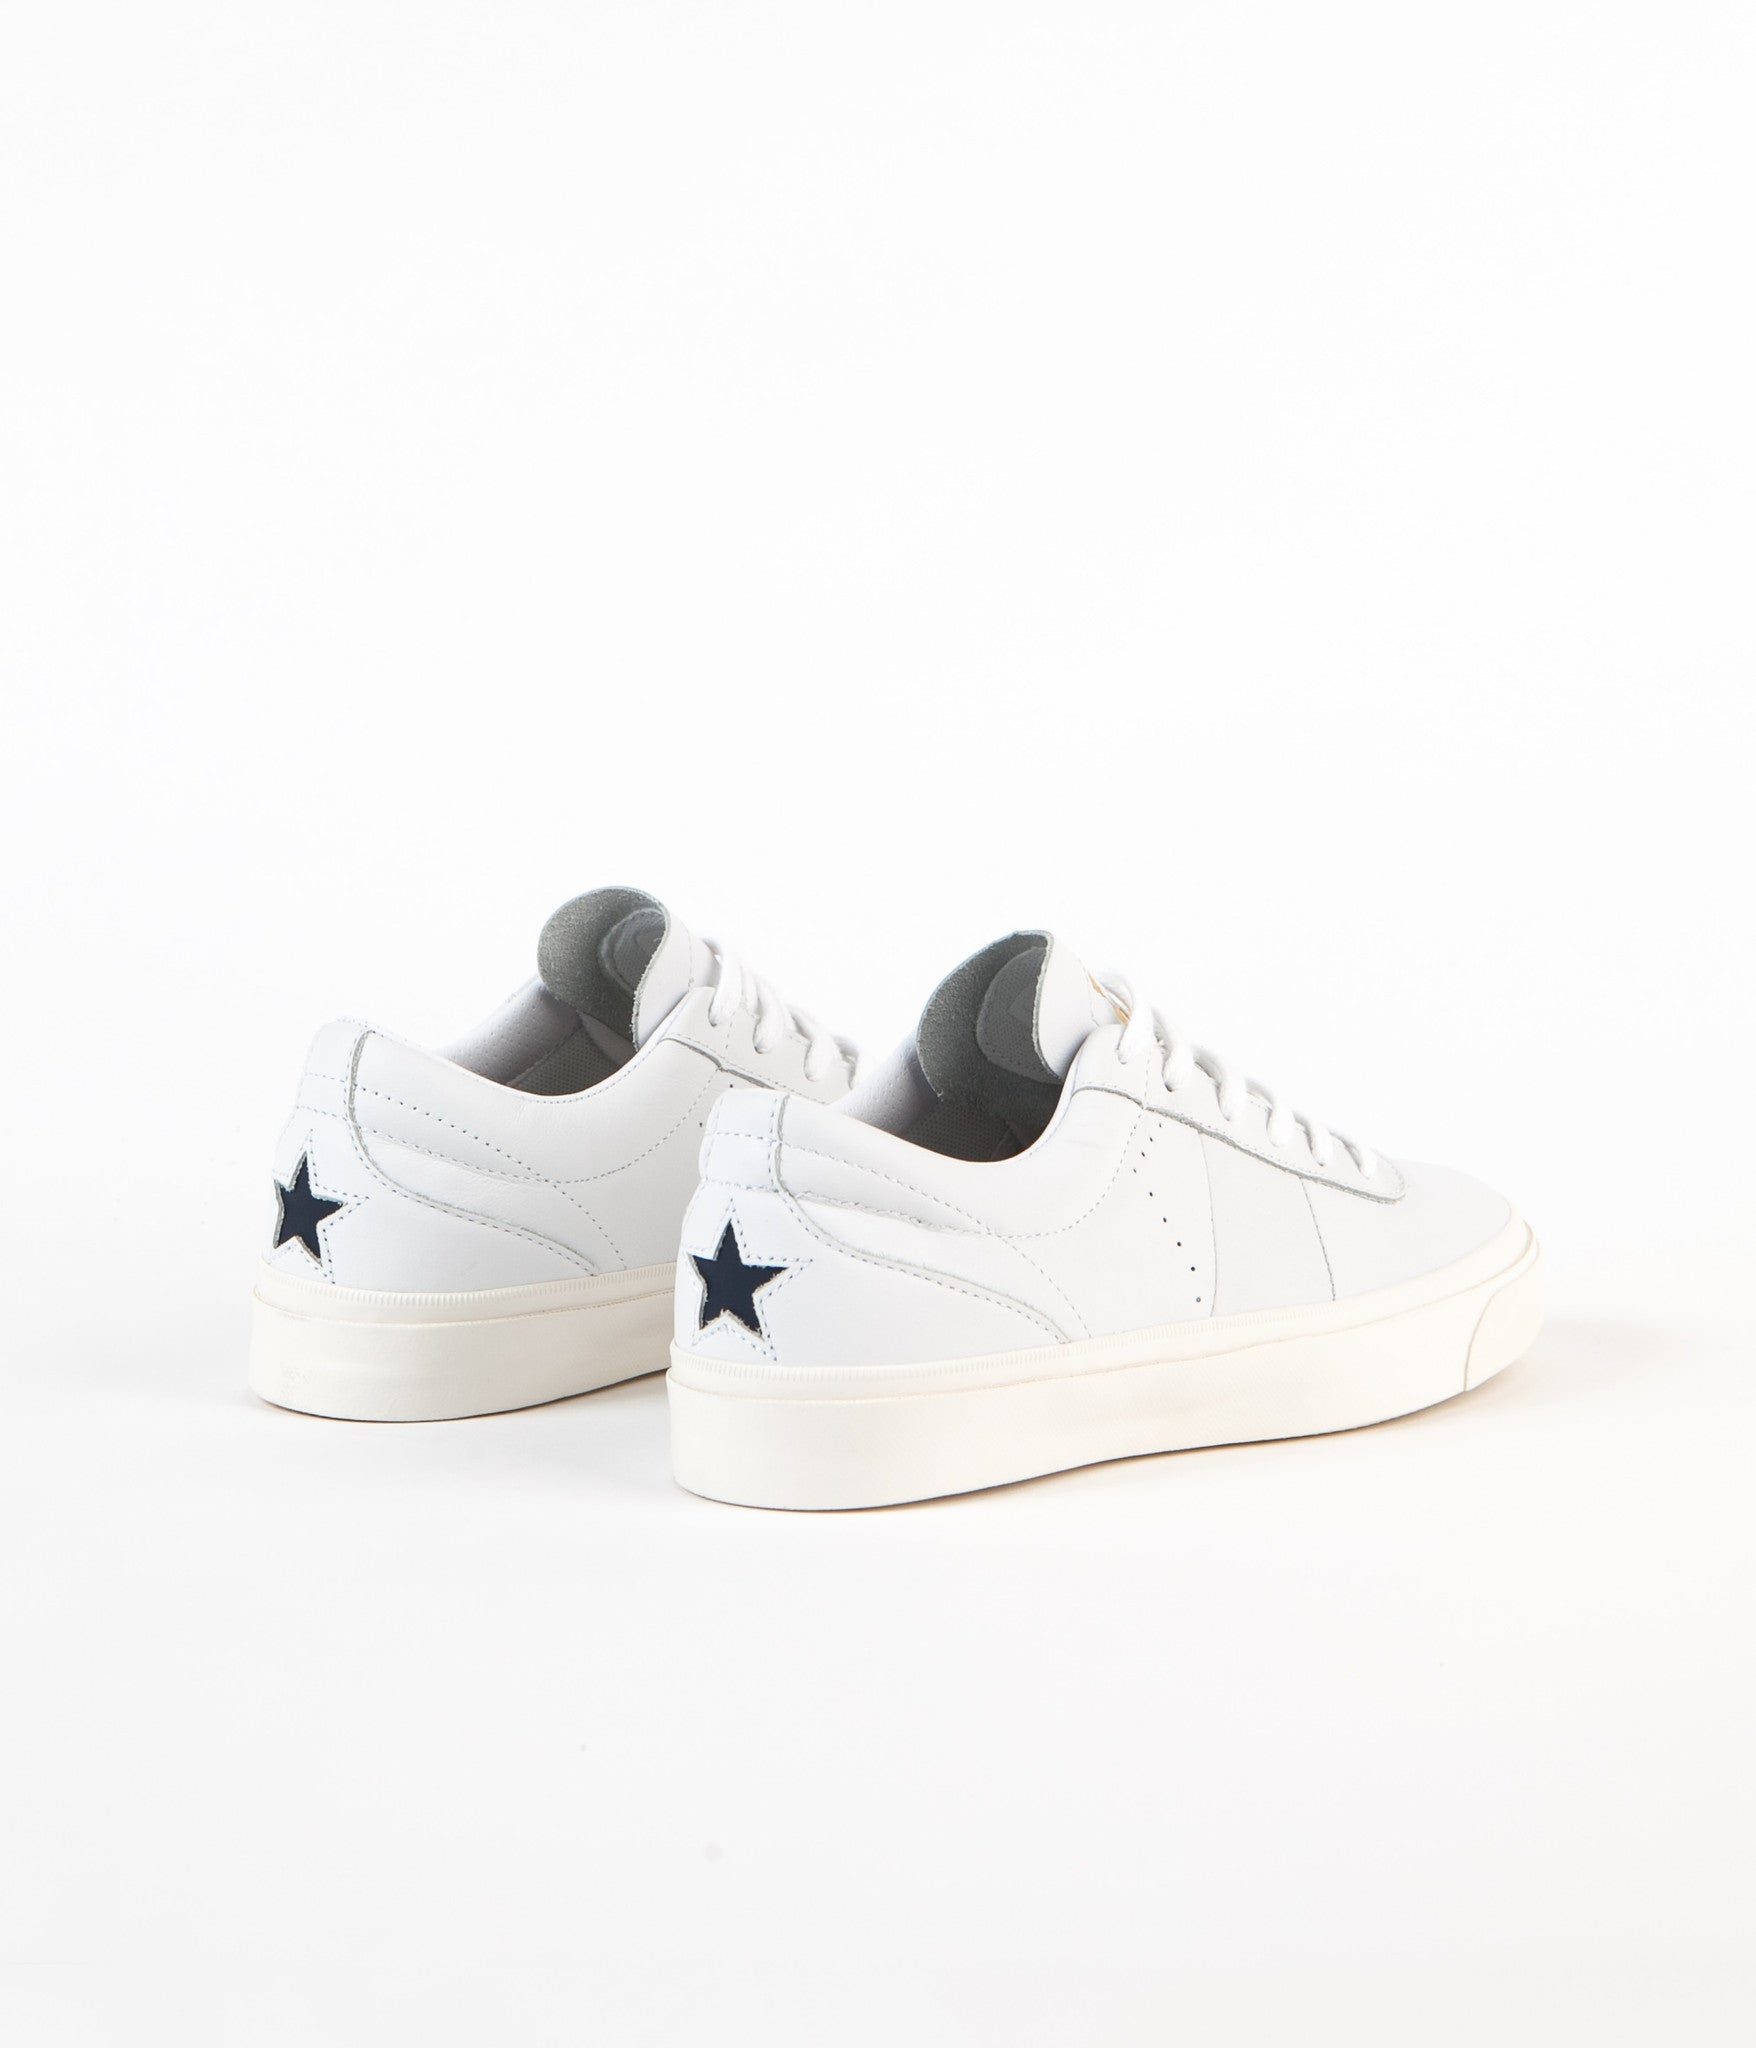 279ed109bf3d ... Converse One Star Ox CC Sage Elsesser Shoes - White   White   Obsidian  ...